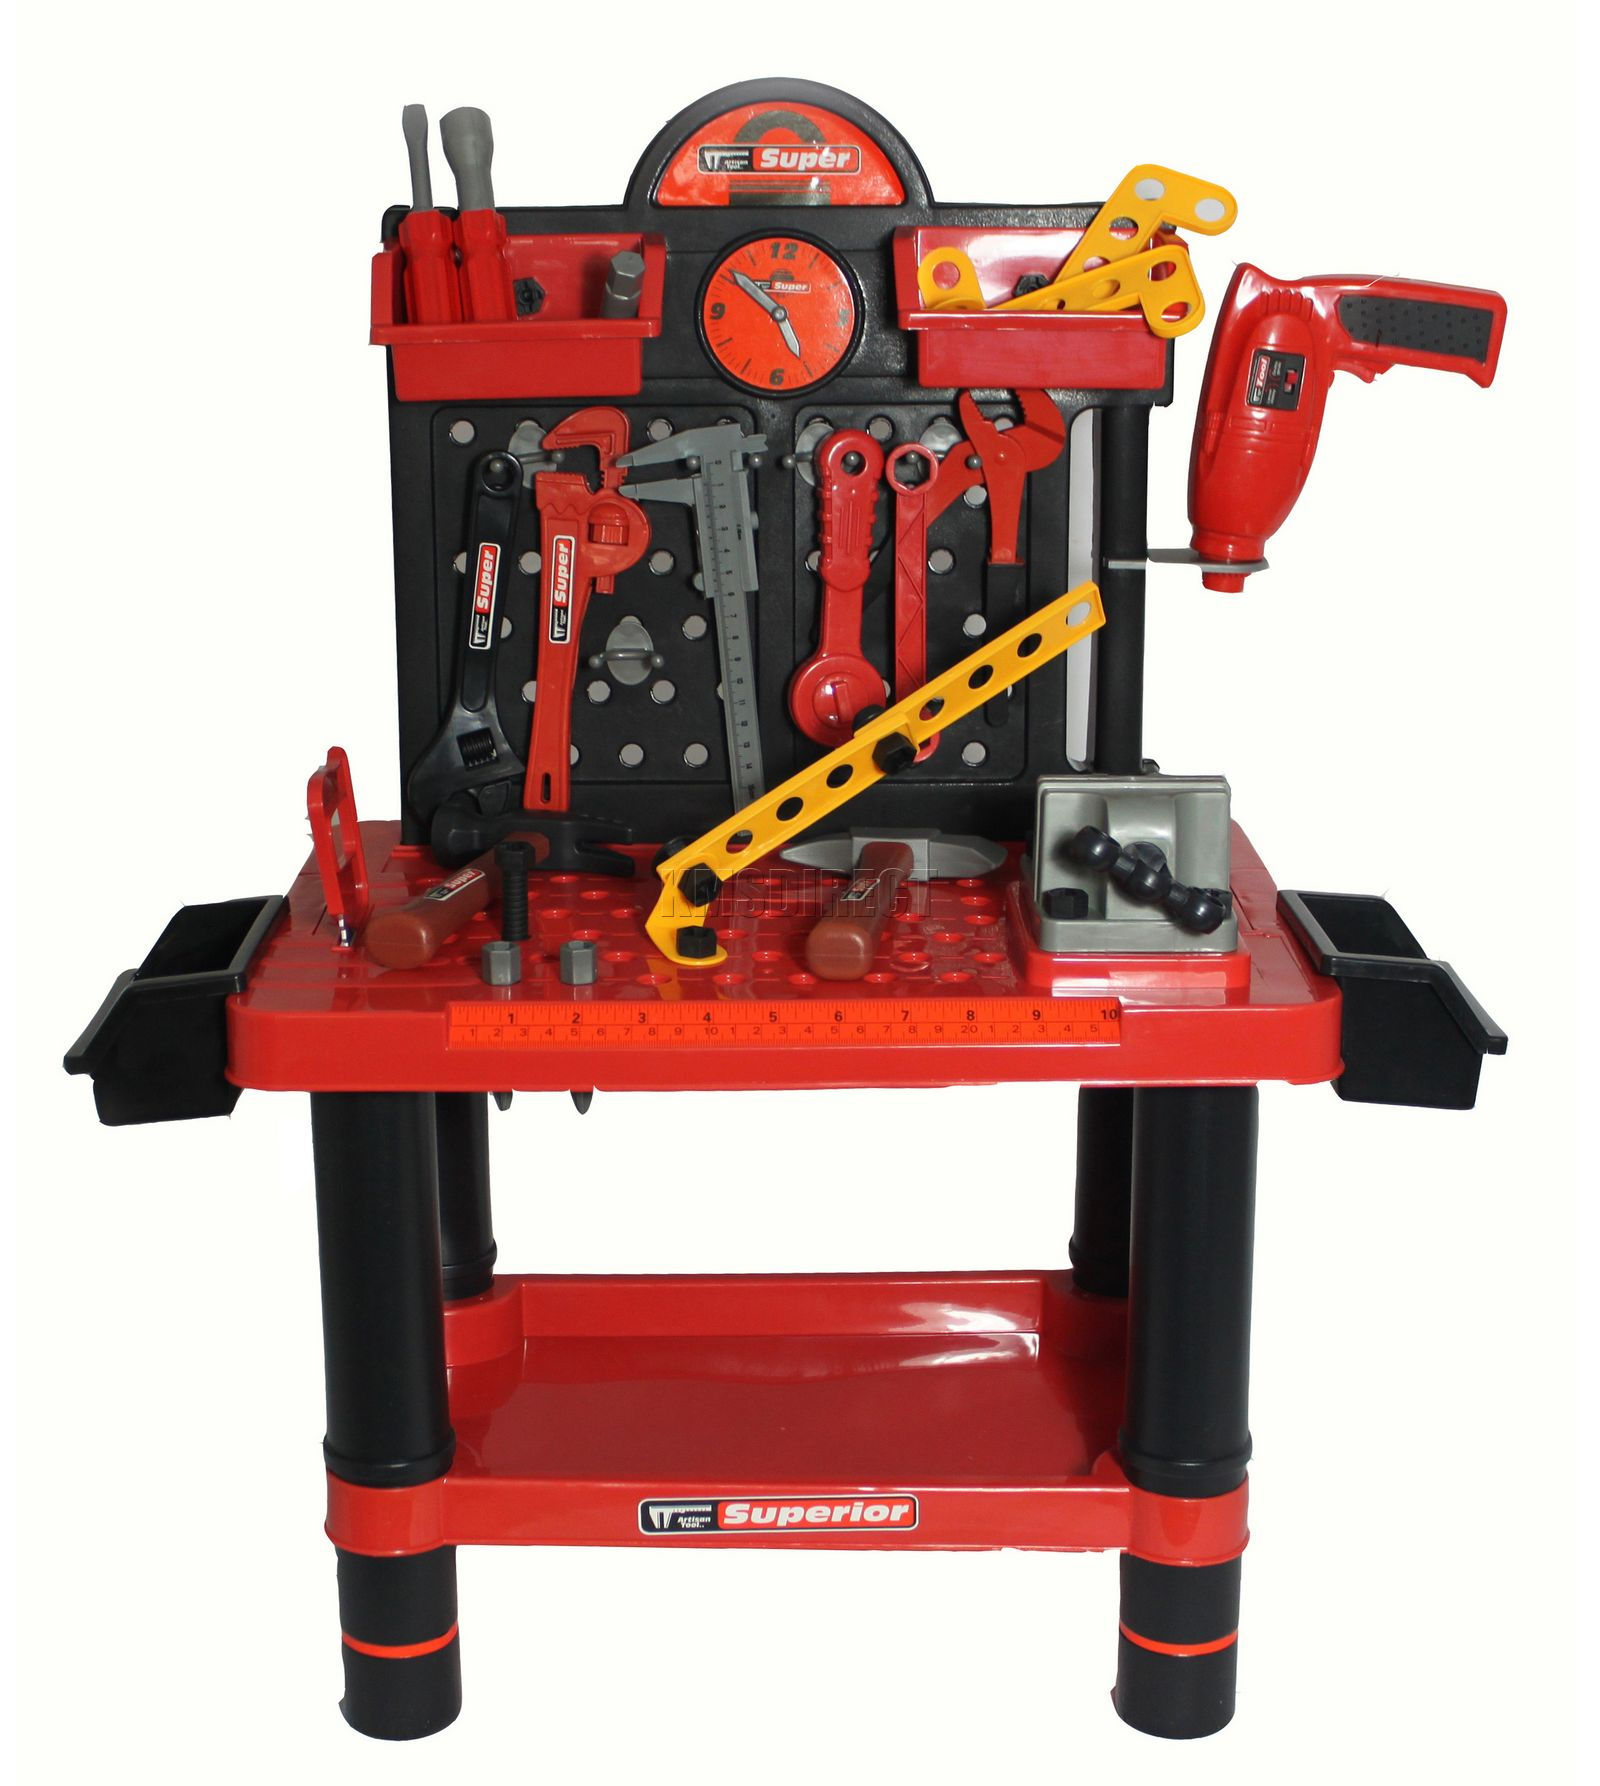 Toy Tools For Boys : Pc children kids boys tool drill kit work bench set role